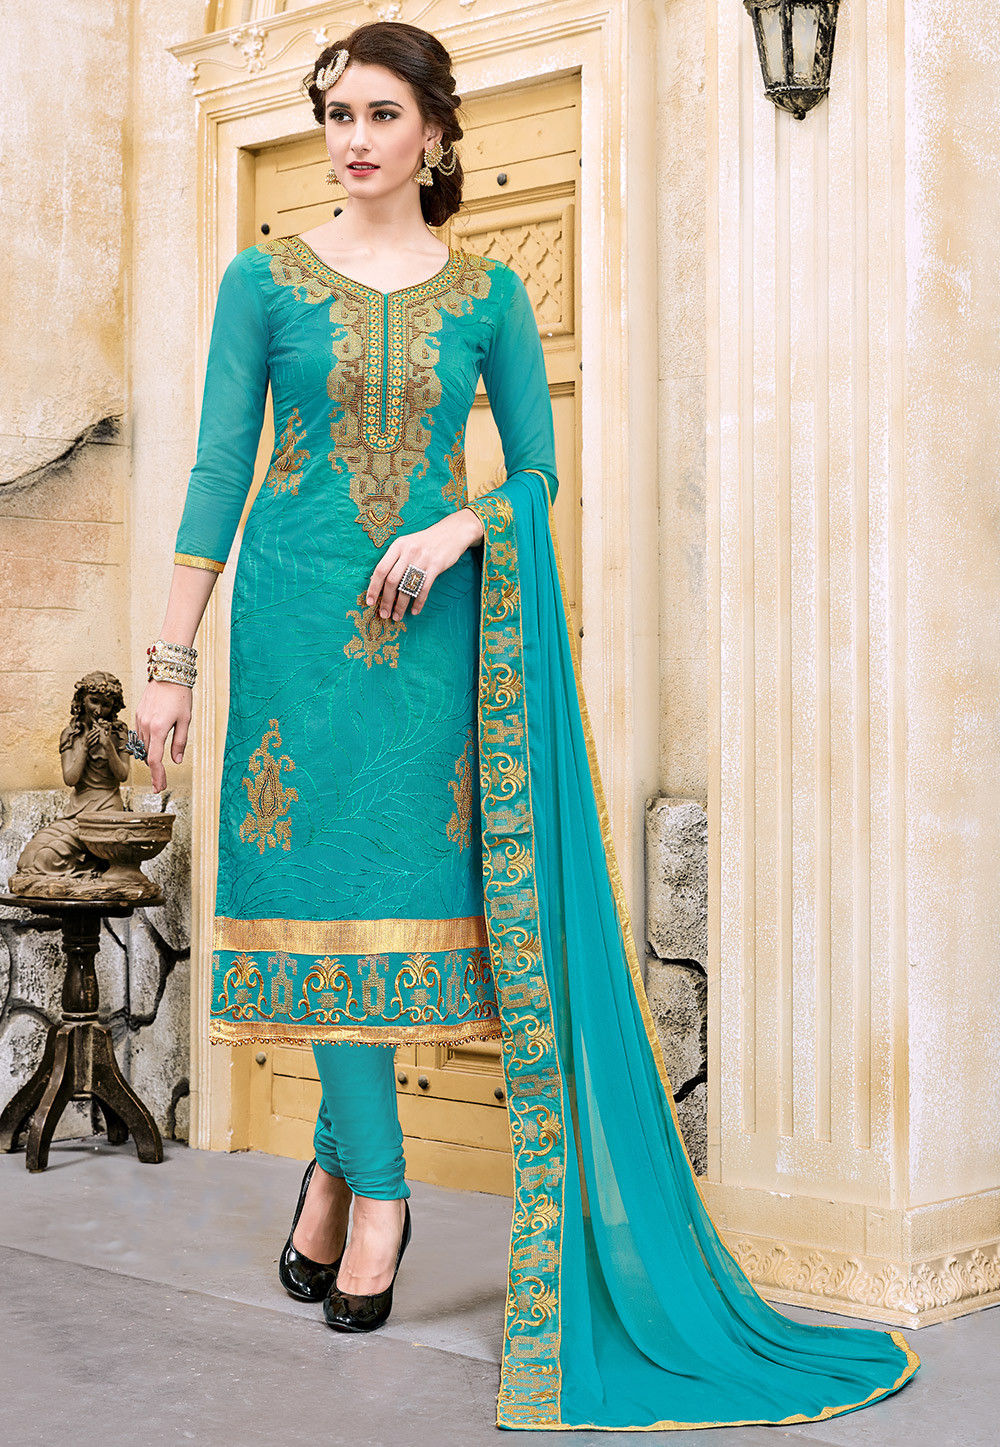 Embroidered Chanderi Silk Straight Suit in Teal Blue